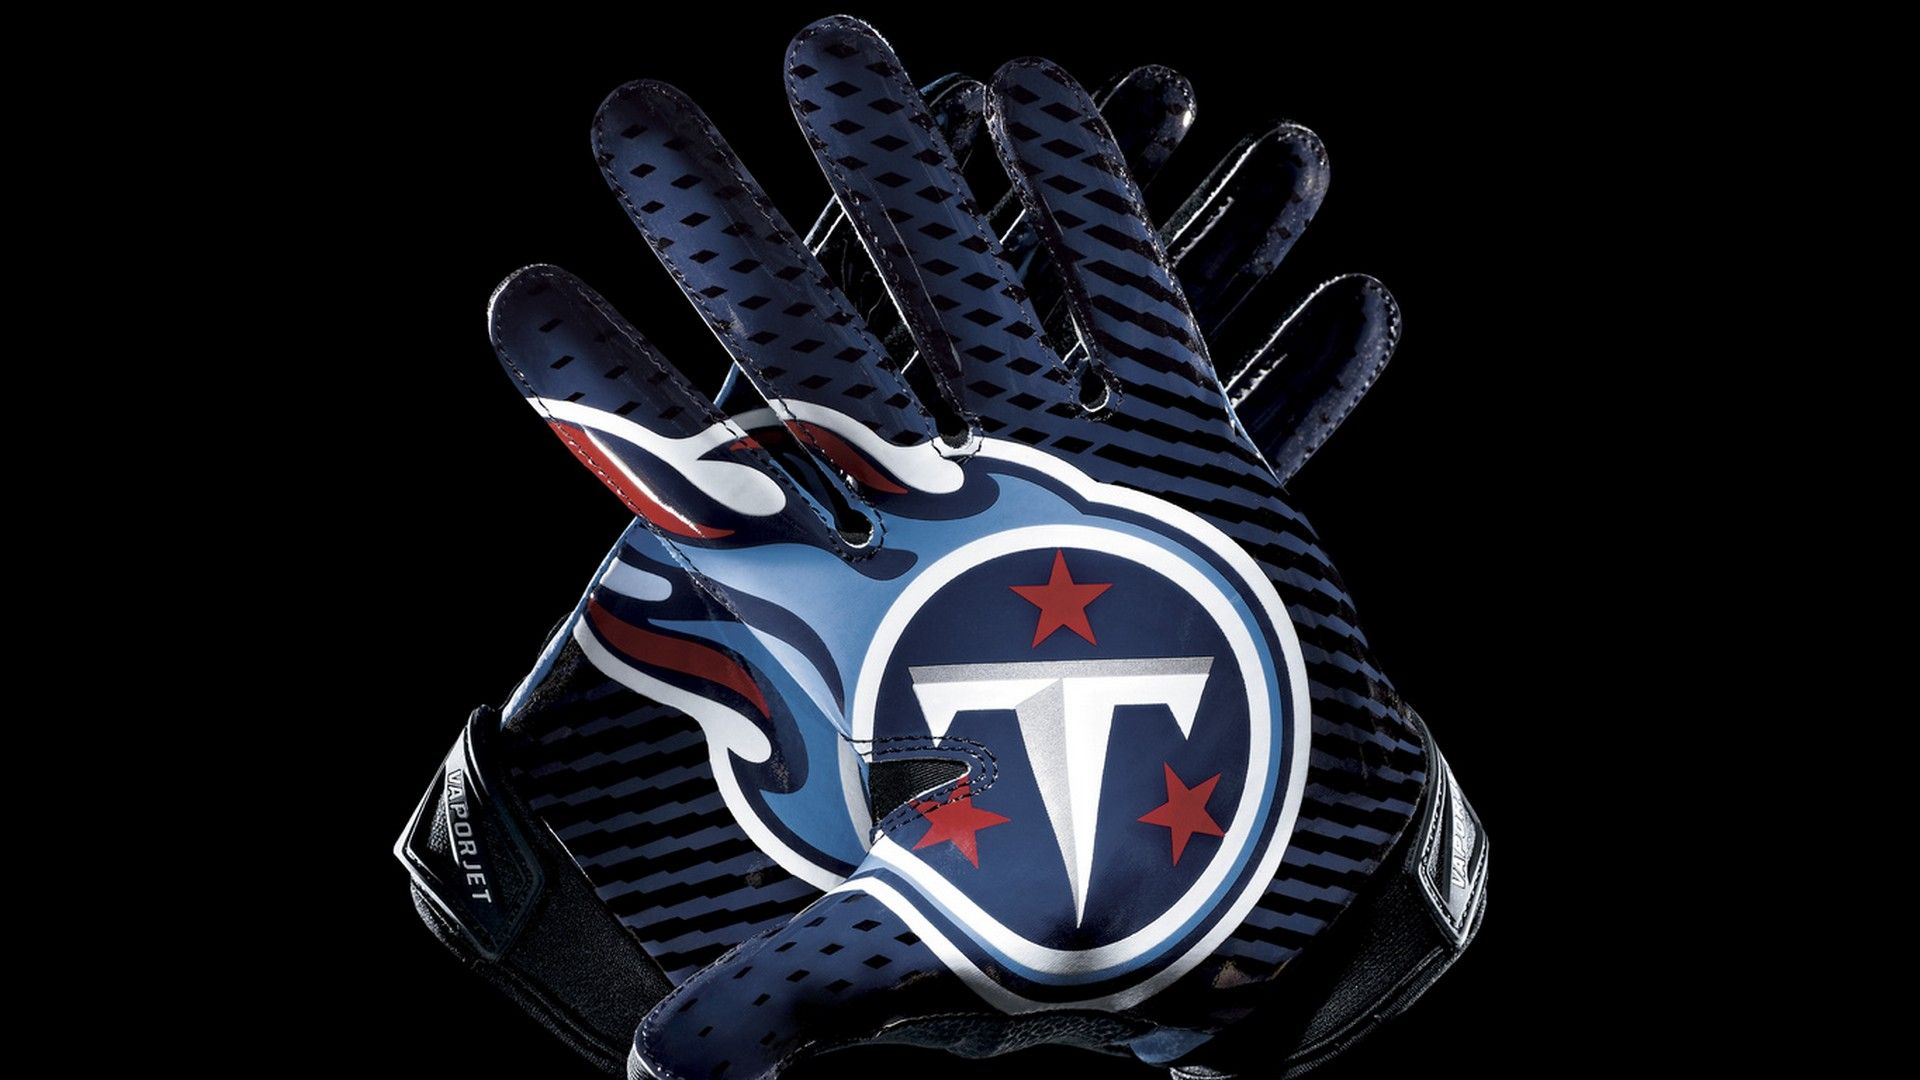 Tennessee Titans Desktop Wallpapers Tennessee titans